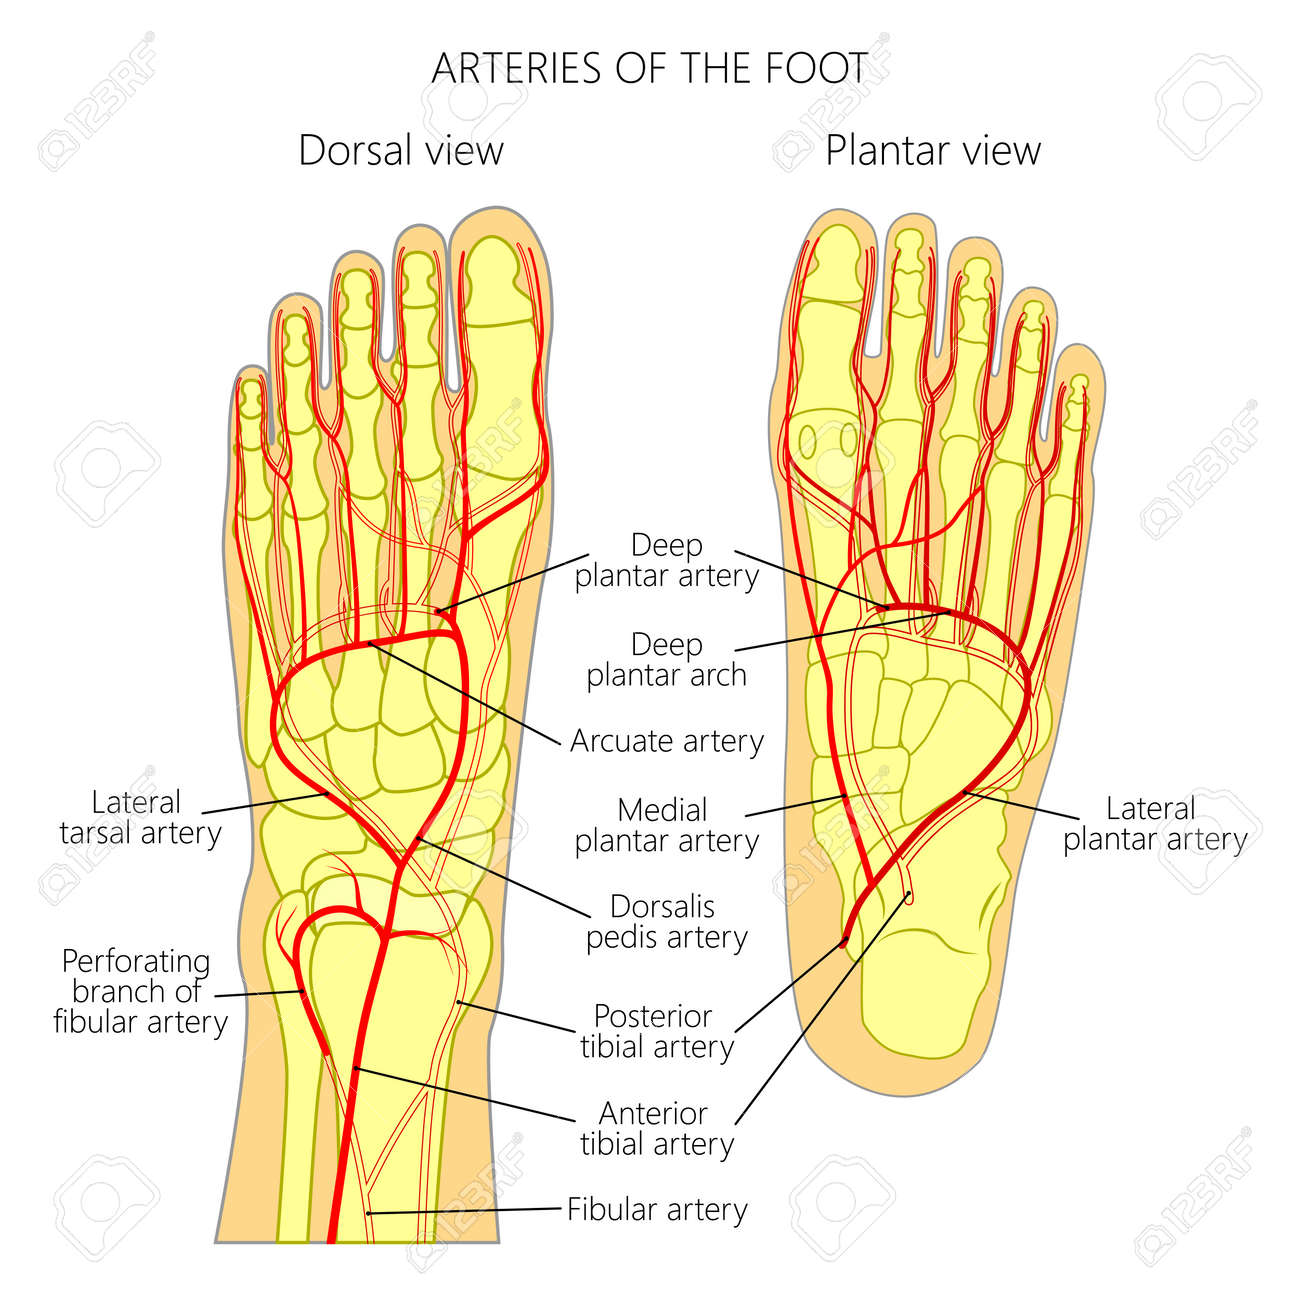 Arteries of the foot dorsal and plantar view of an ankle arteries of the foot dorsal and plantar view of an ankle diagram pooptronica